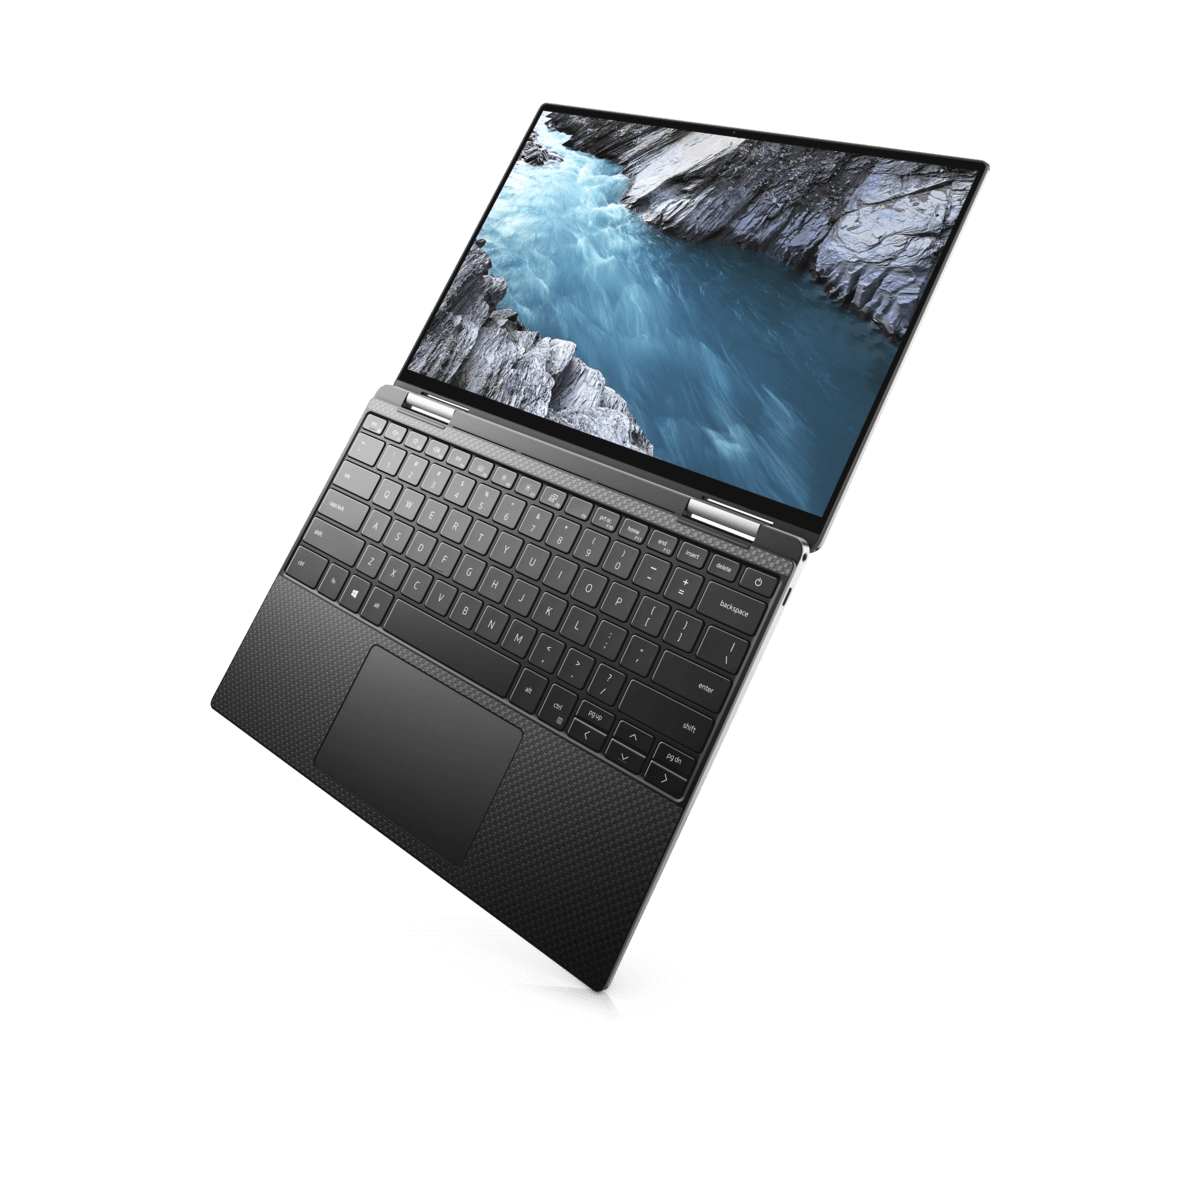 Dell XPS 13 2-in-1 (7390) Reviews - TechSpot